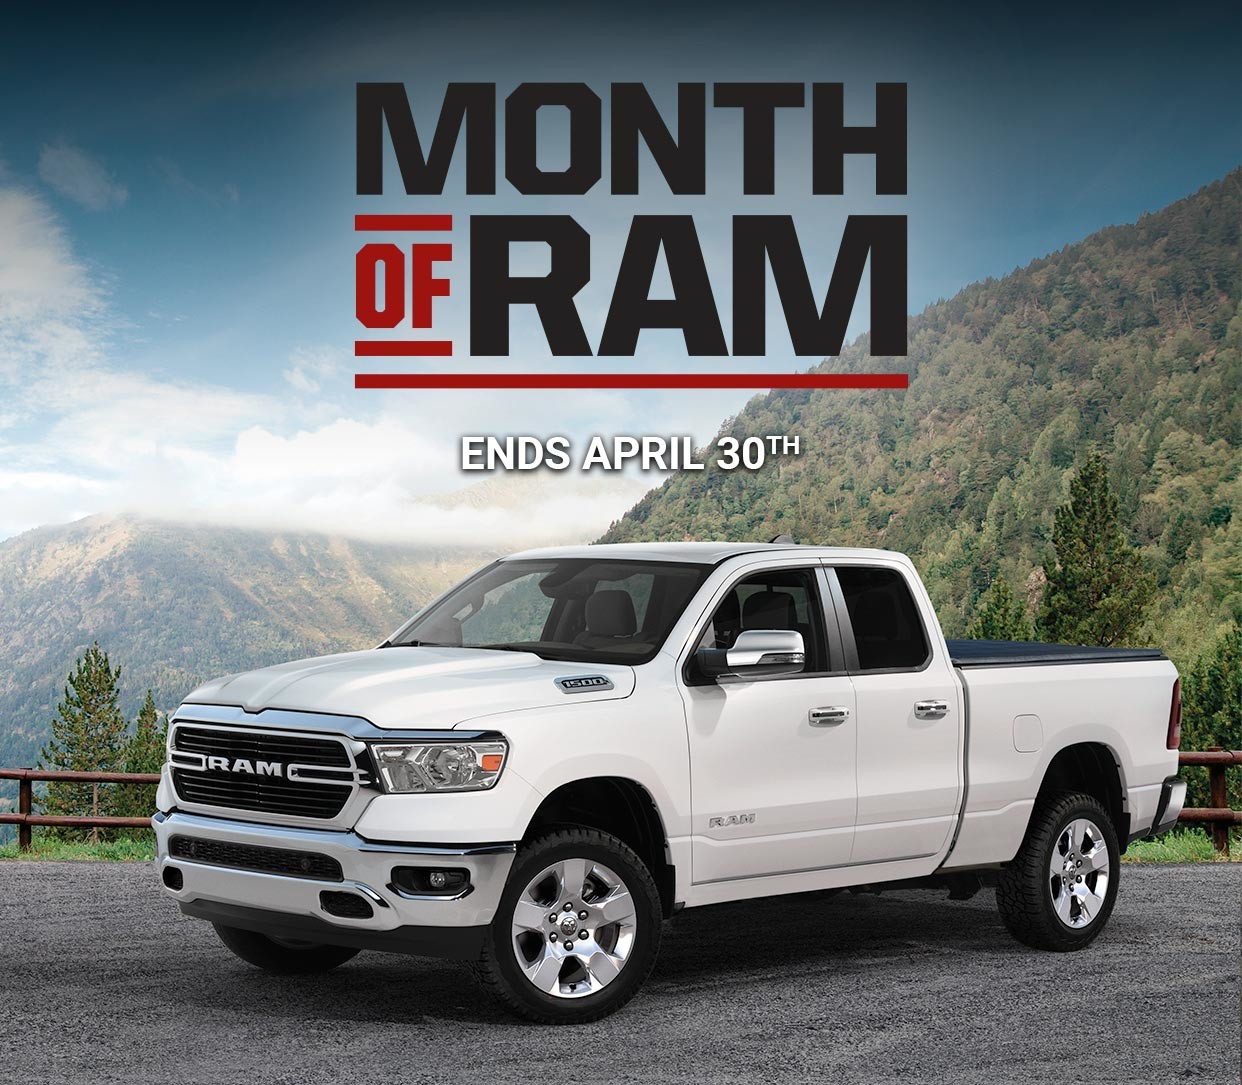 2019 Ram 1500: RAM Pickup Trucks And Commercial Vehicles